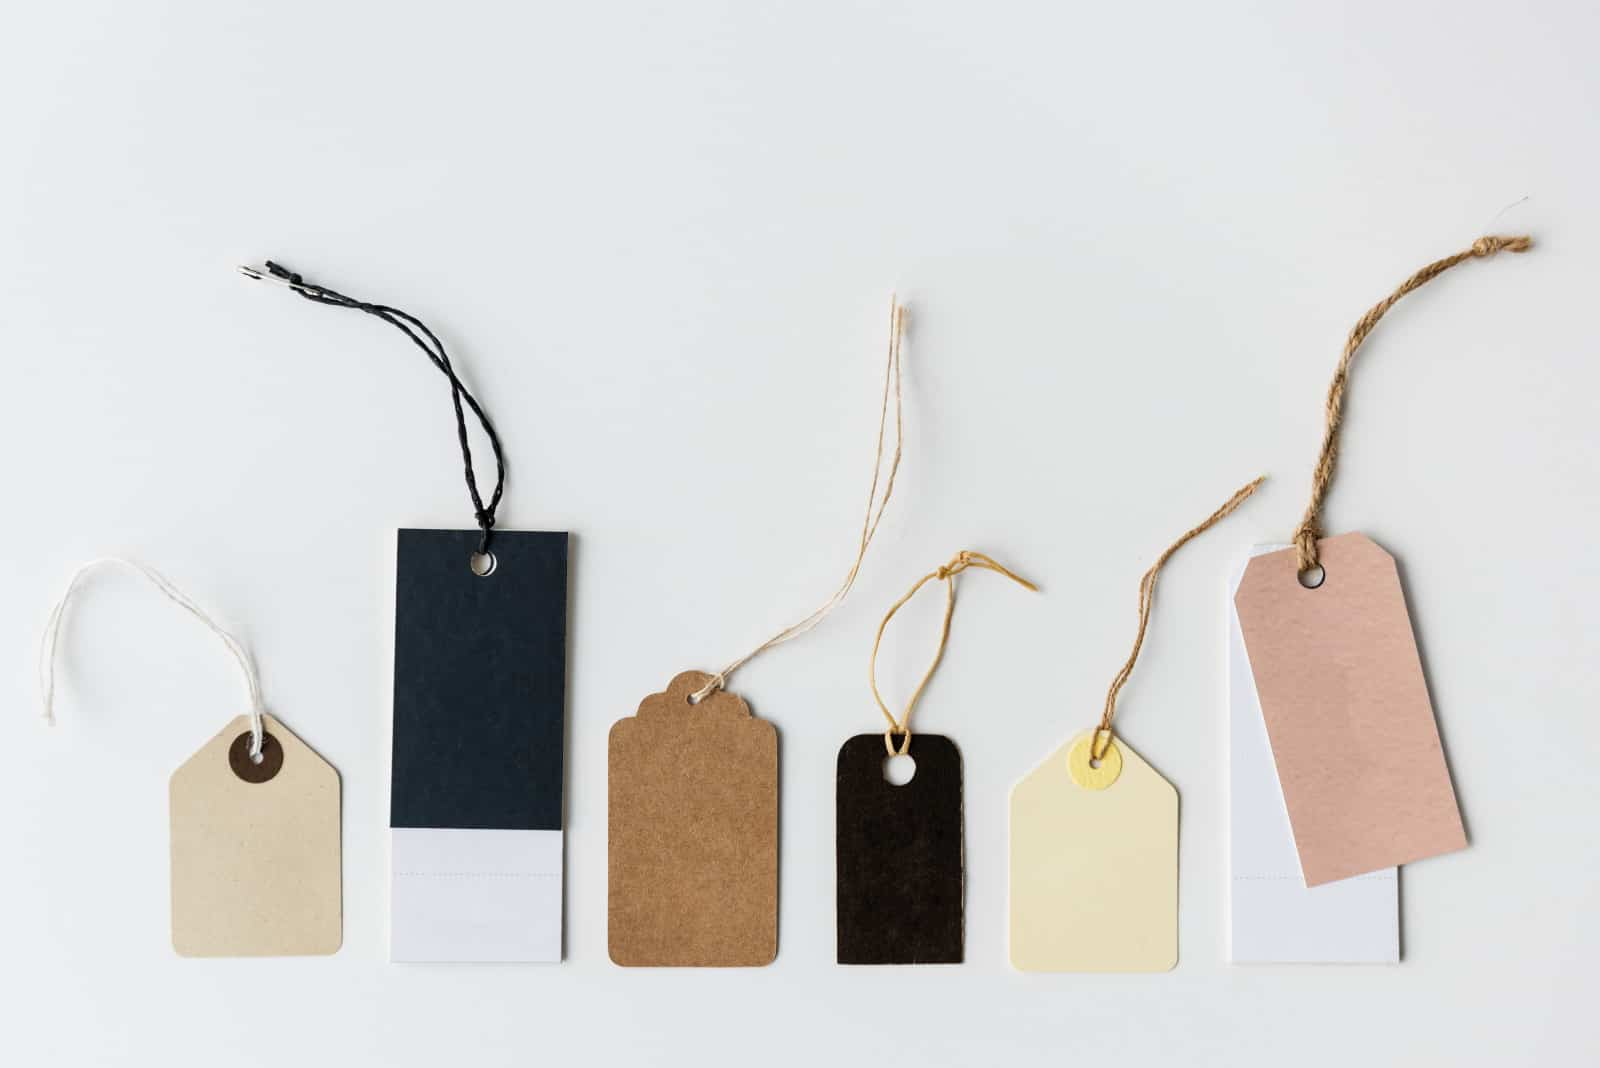 ecommerce R&D through gift tags